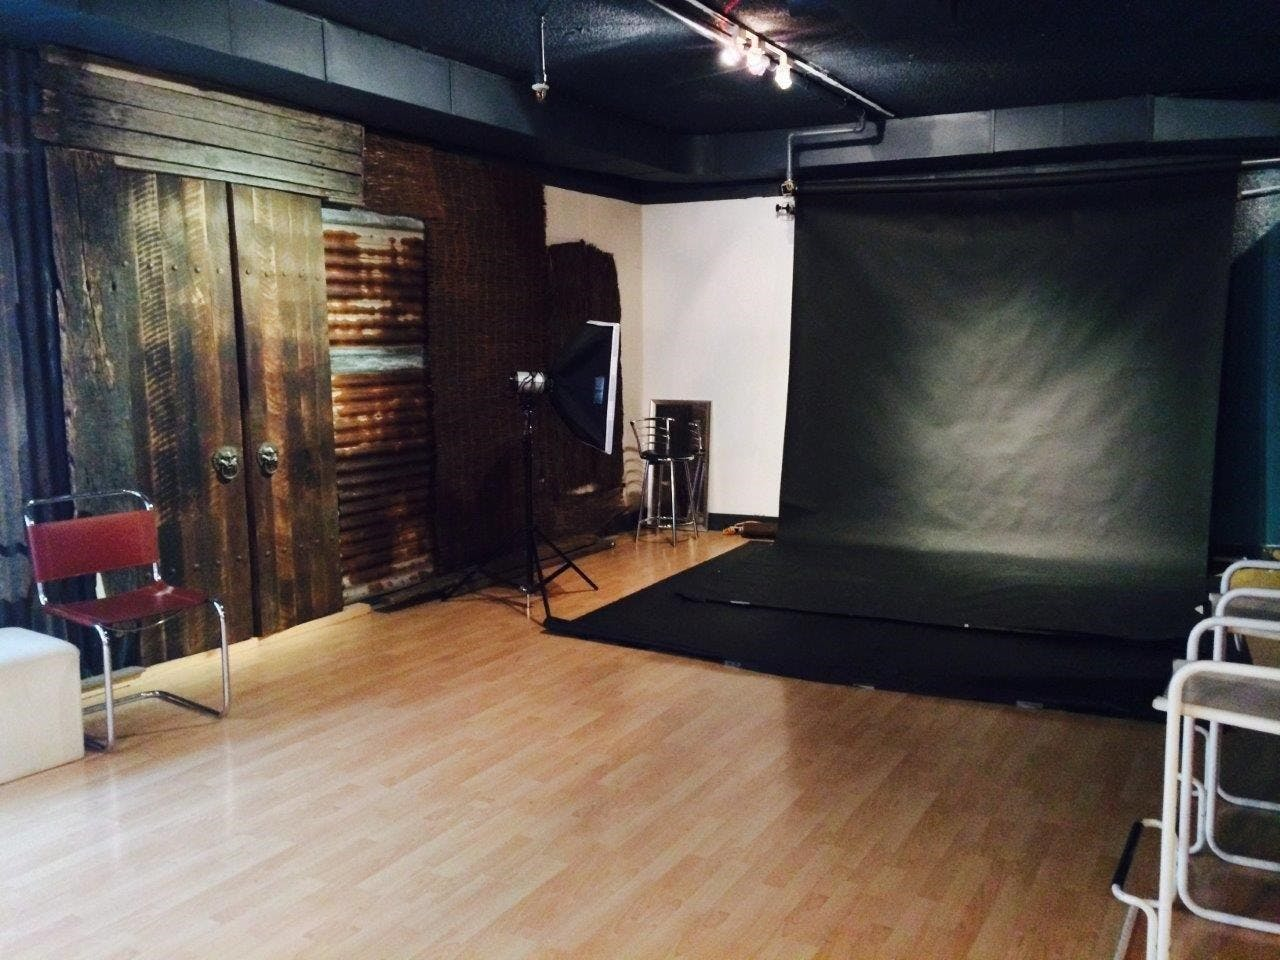 Photography Studio, creative studio at MAMM International Sydney, image 1